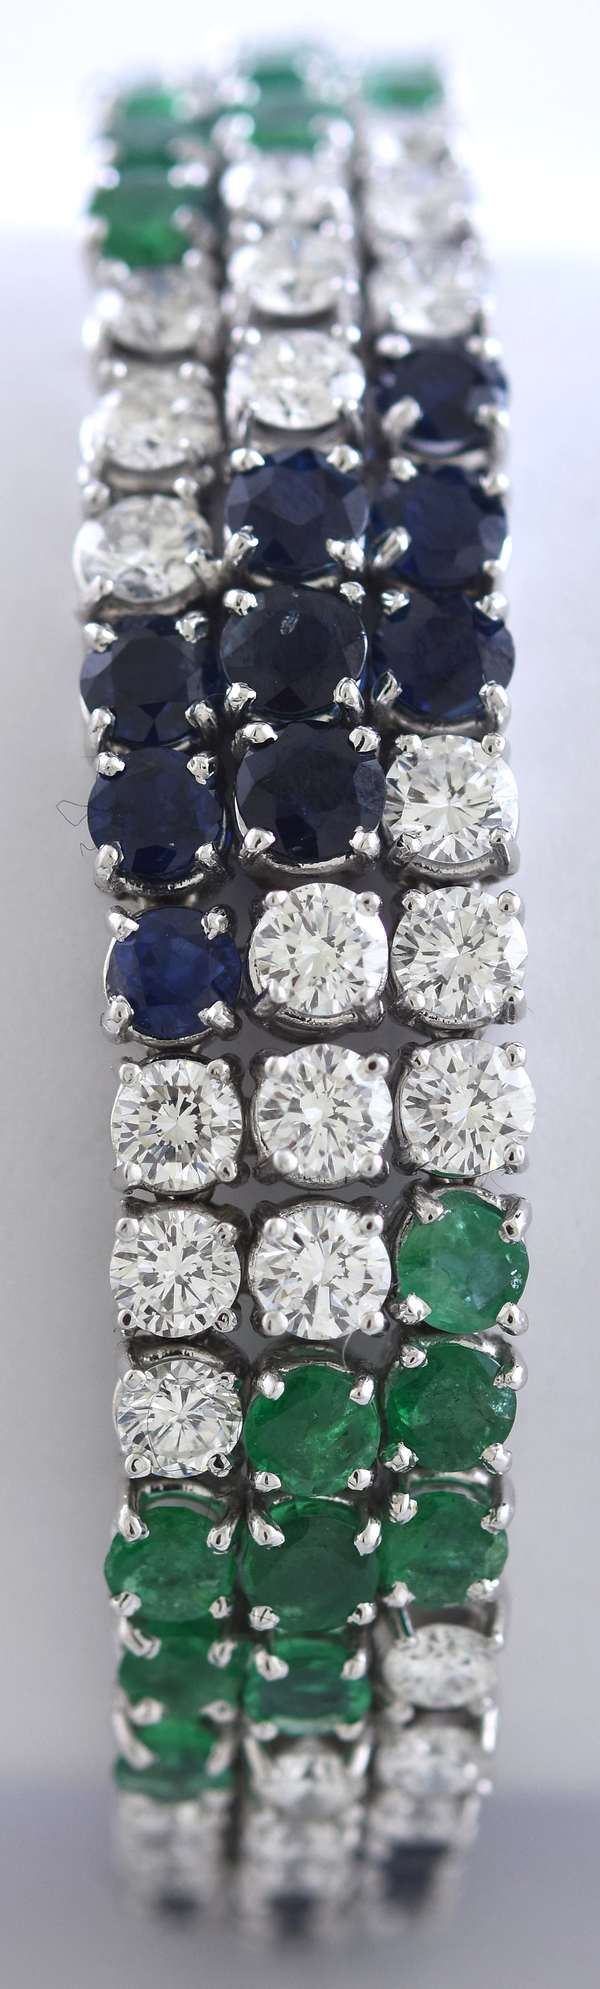 "18K white gold diamond, emerald and blue sapphire bracelet, 147 round brilliant cut stones, approx. 21 ctw., 7,25""L, 44.2 grams"